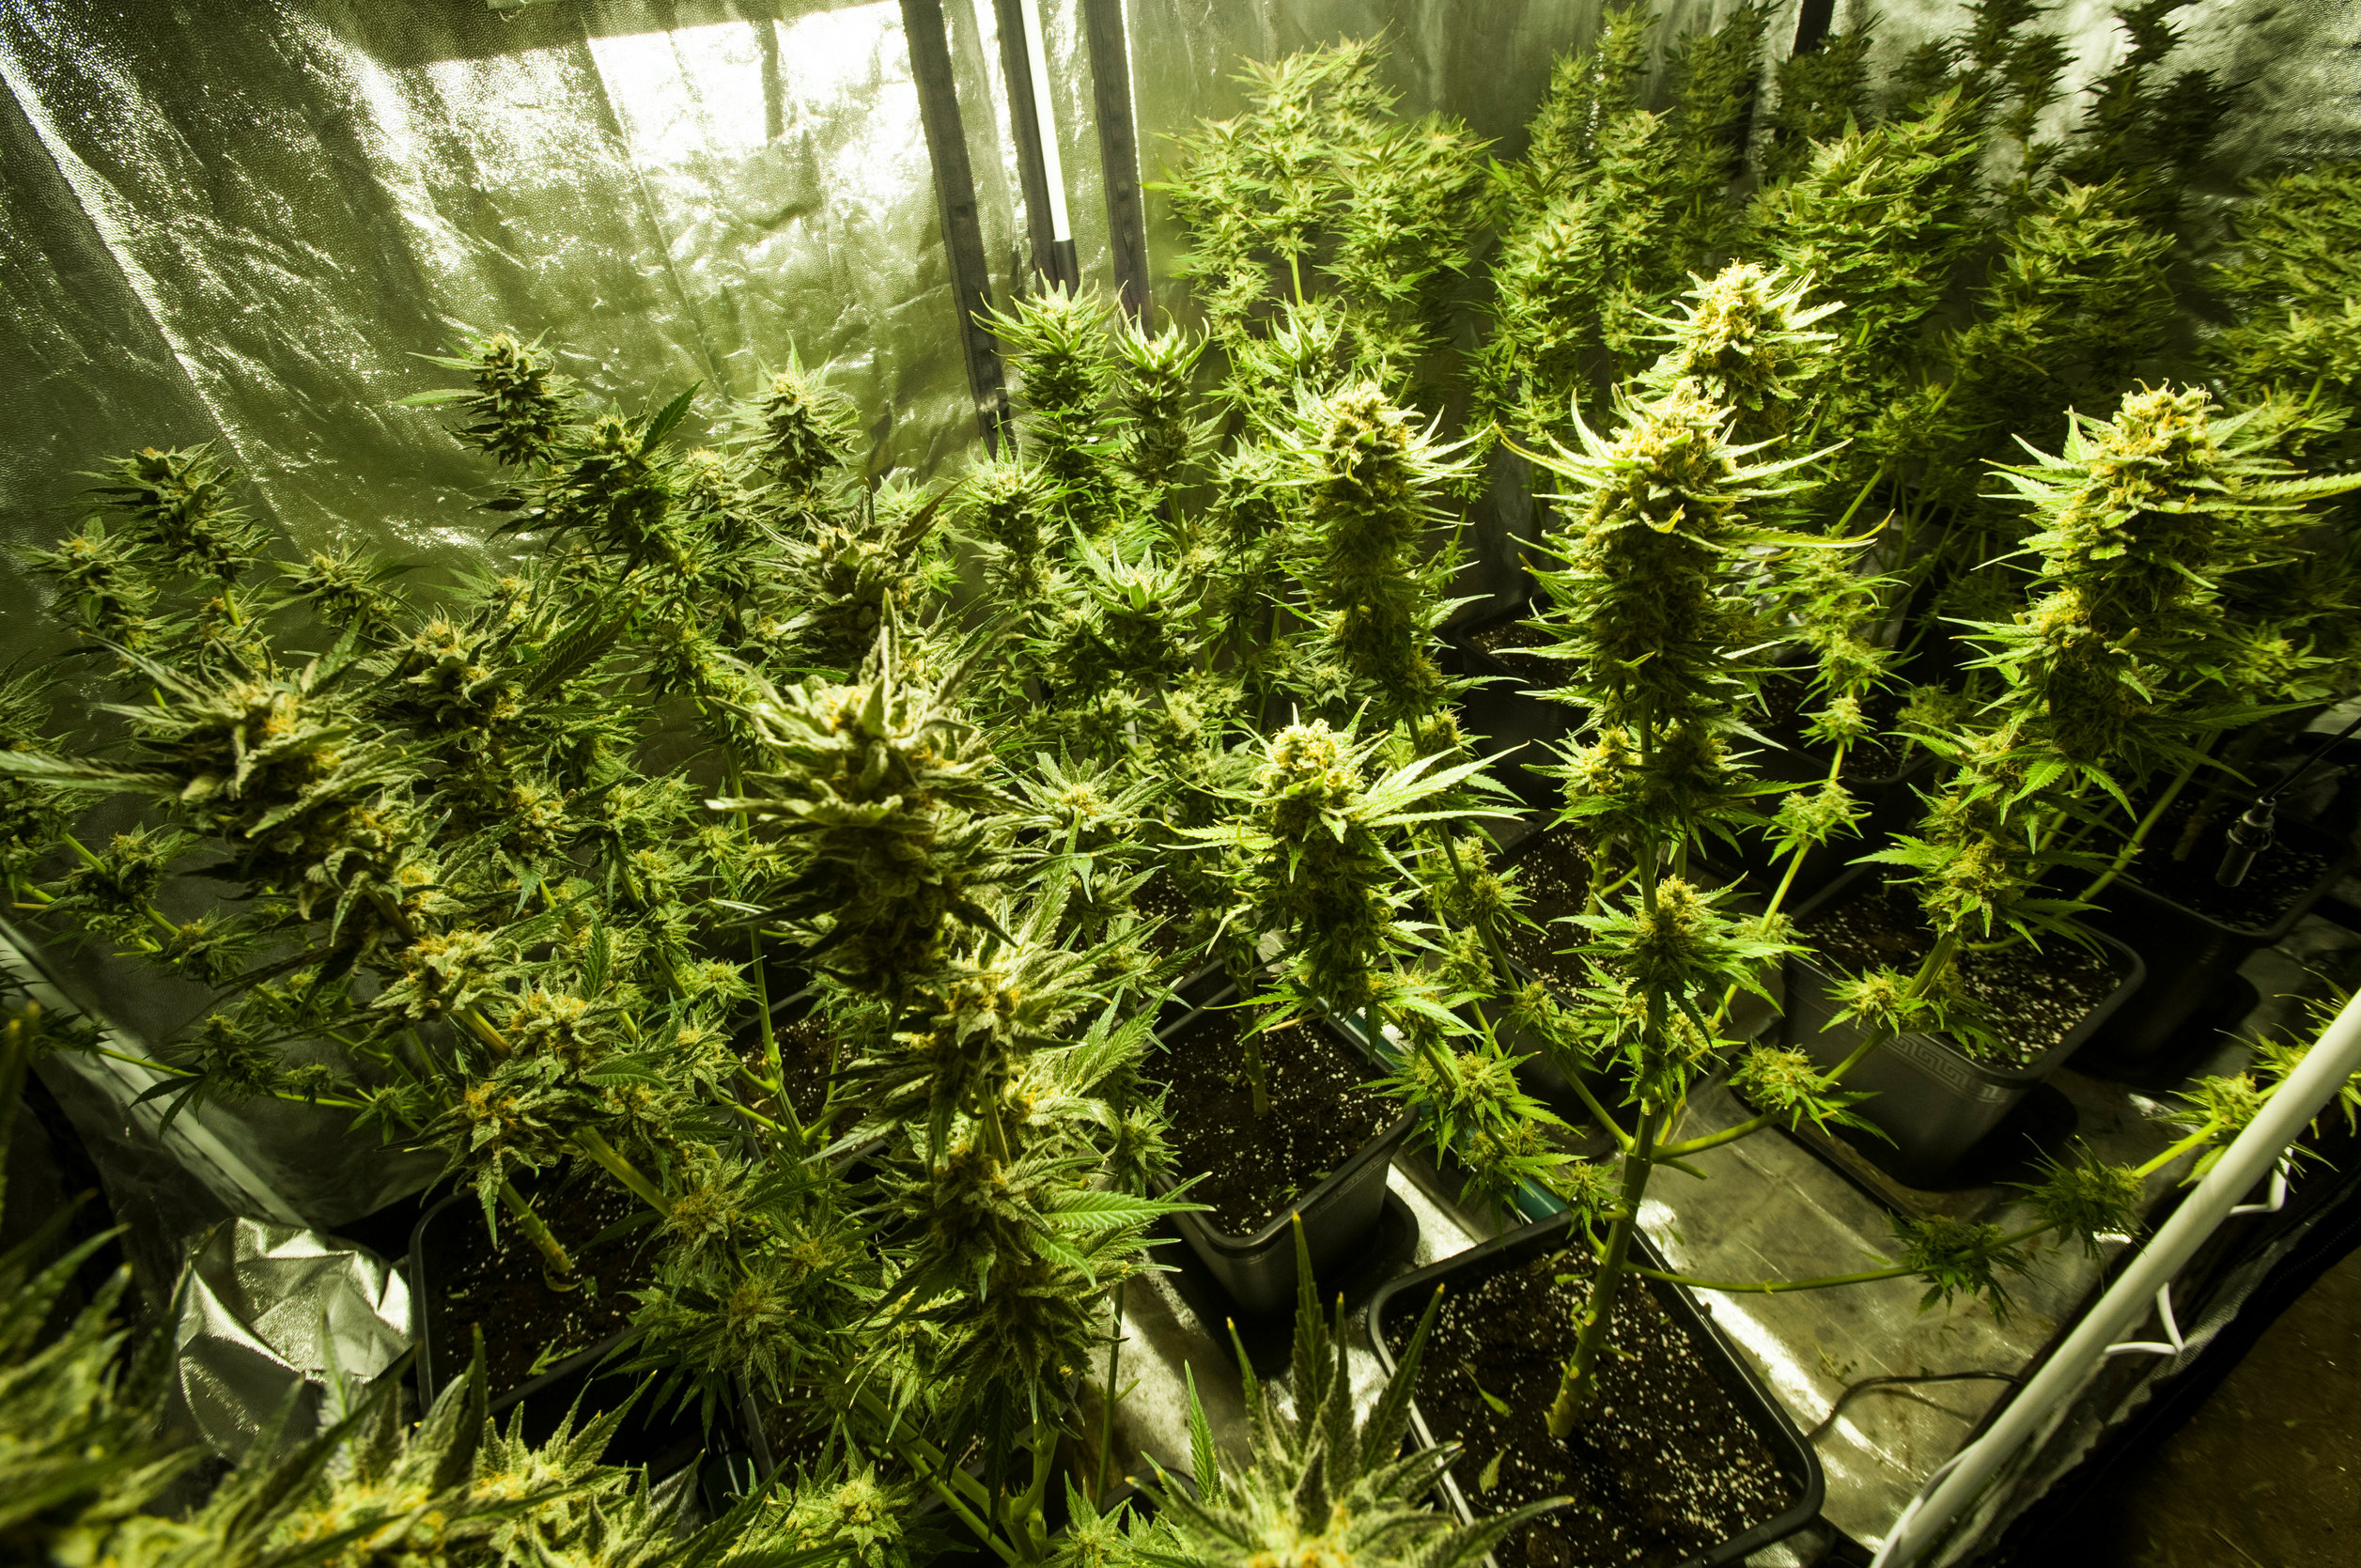 A beginner's guide to growing weed indoors